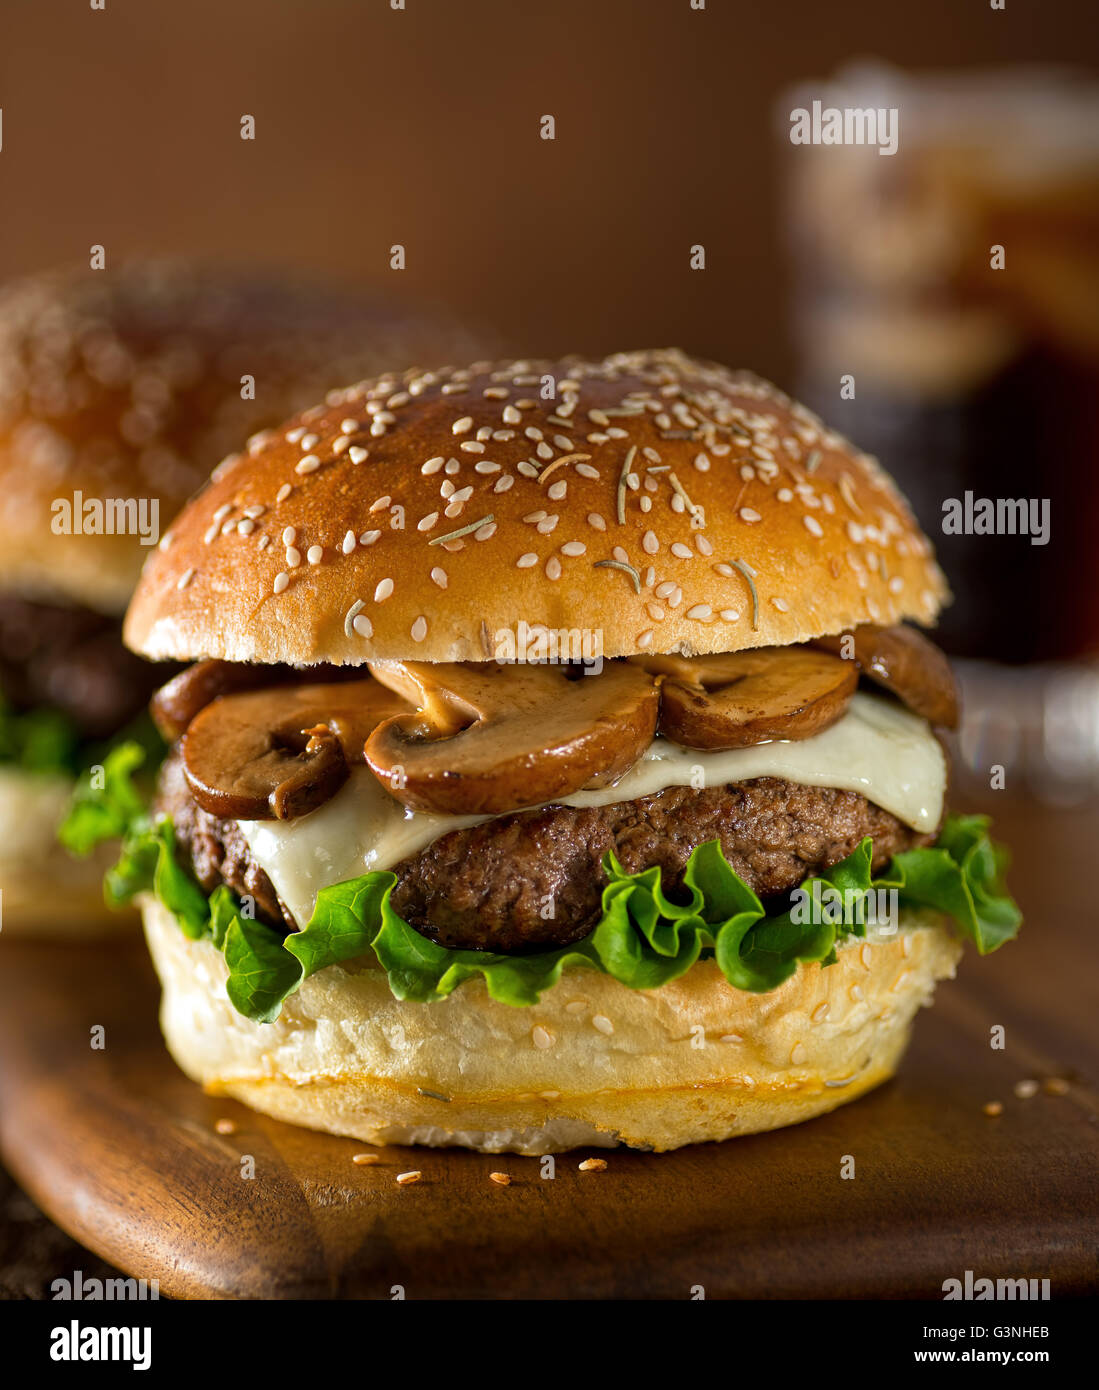 A delicious gourmet hamburger topped with swiss cheese and fried mushrooms on a rosemary sesame seed bun. - Stock Image